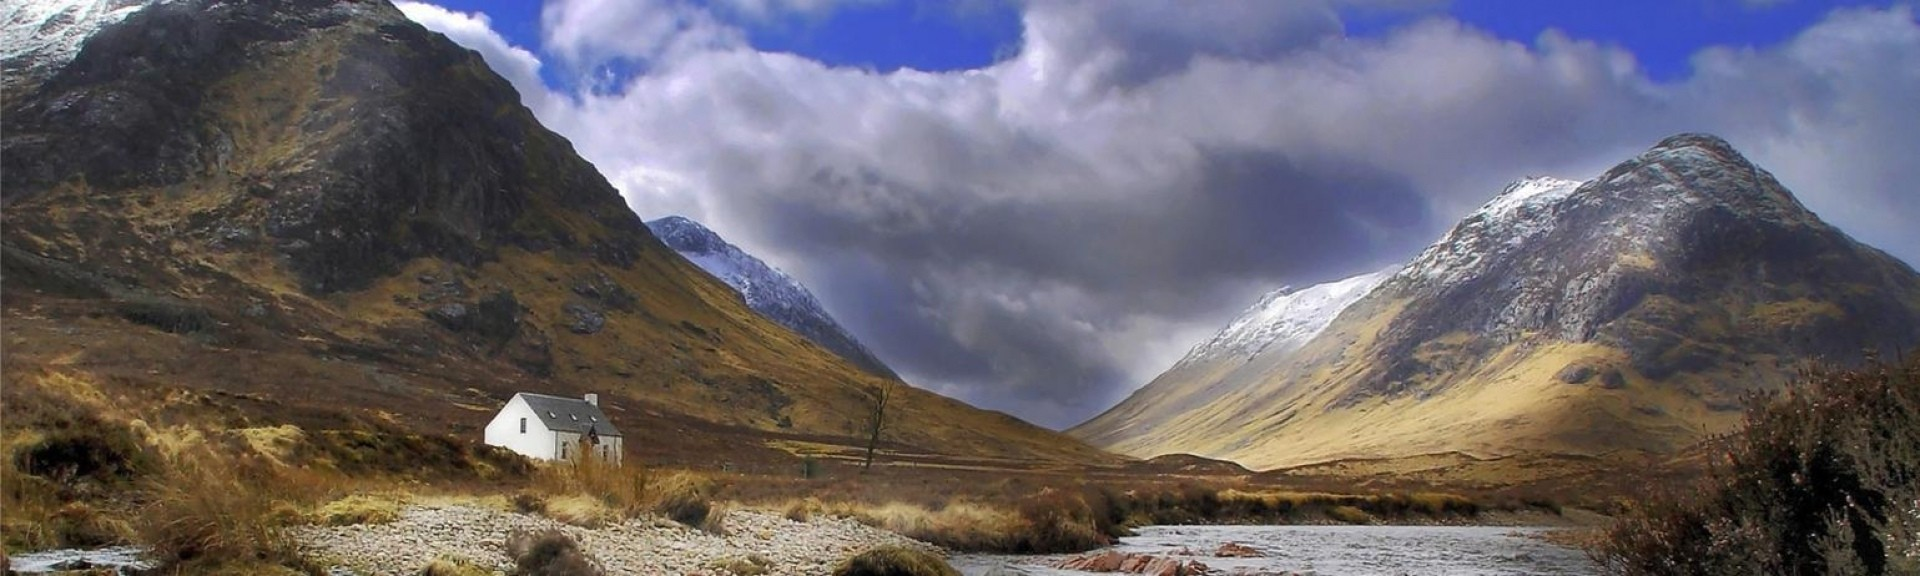 Glen Coe in the Scottish Highlands